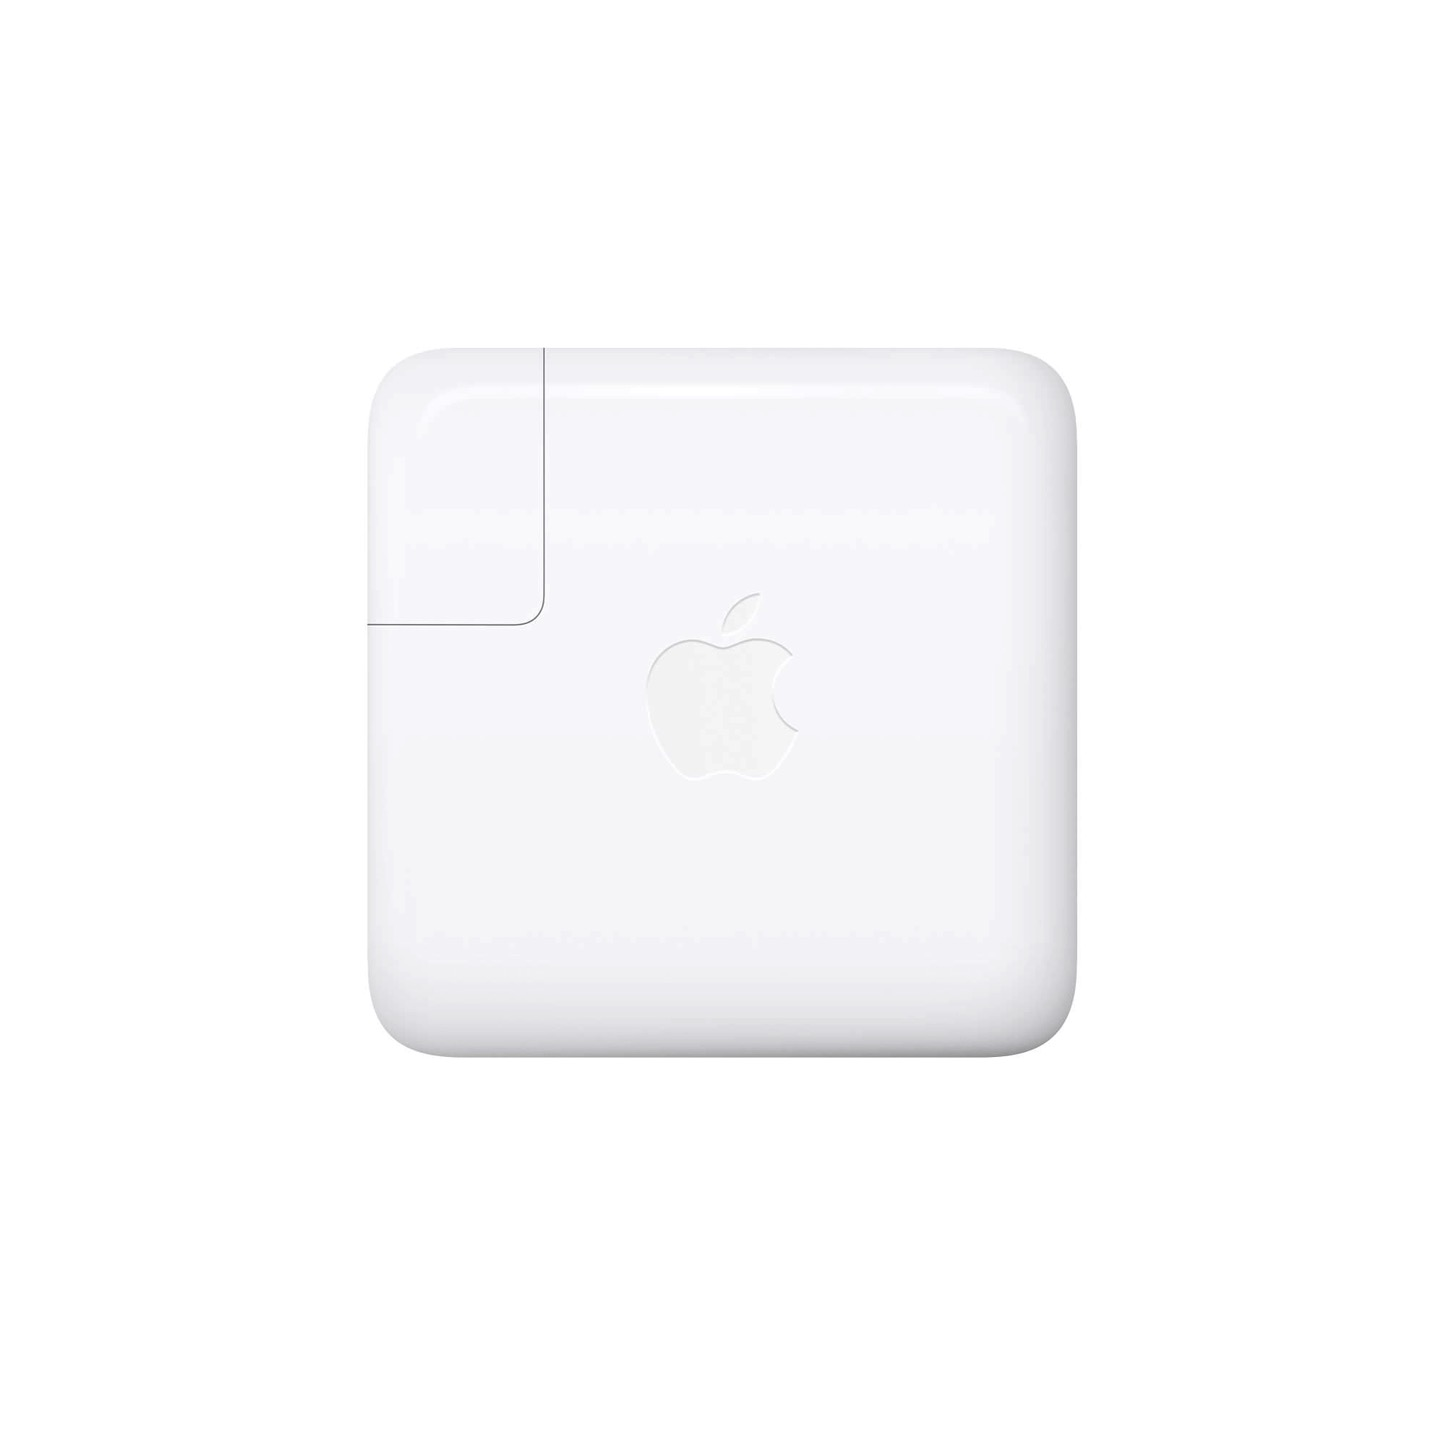 Apple 61W USB C Power Adapter